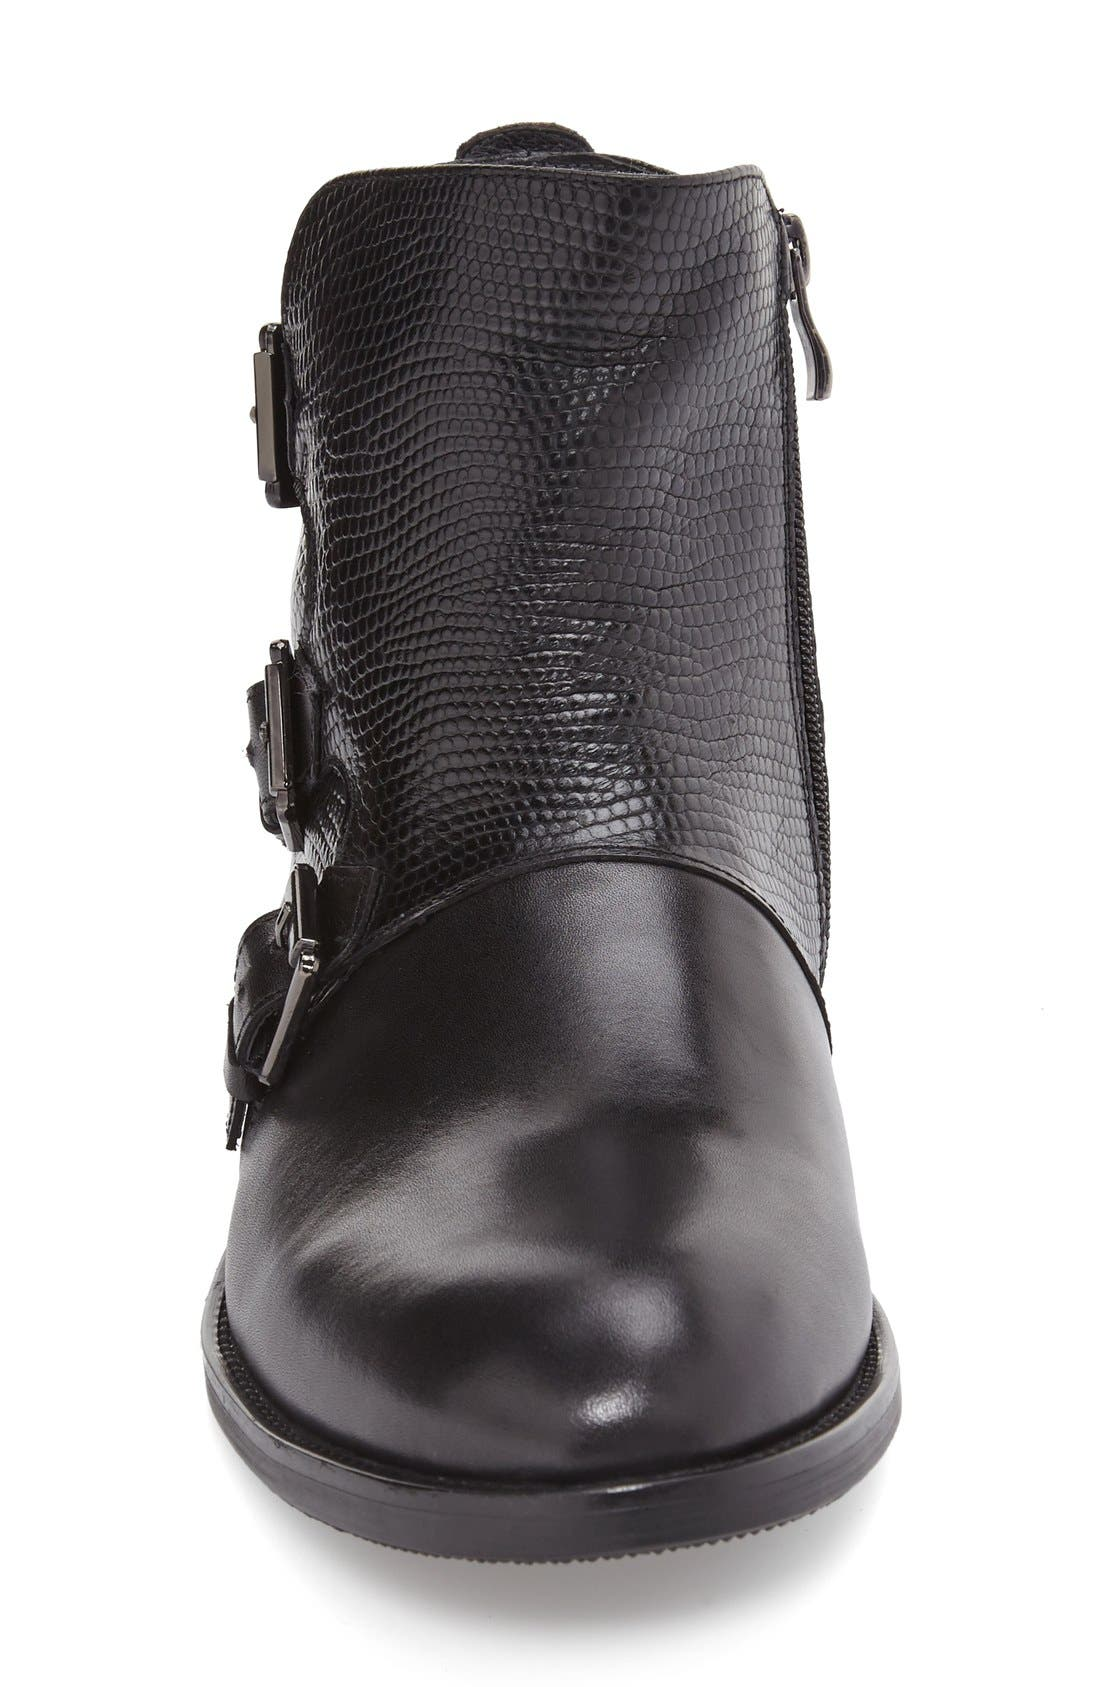 Alternate Image 3  - Zanzara 'Messina' Zip Boot (Men)